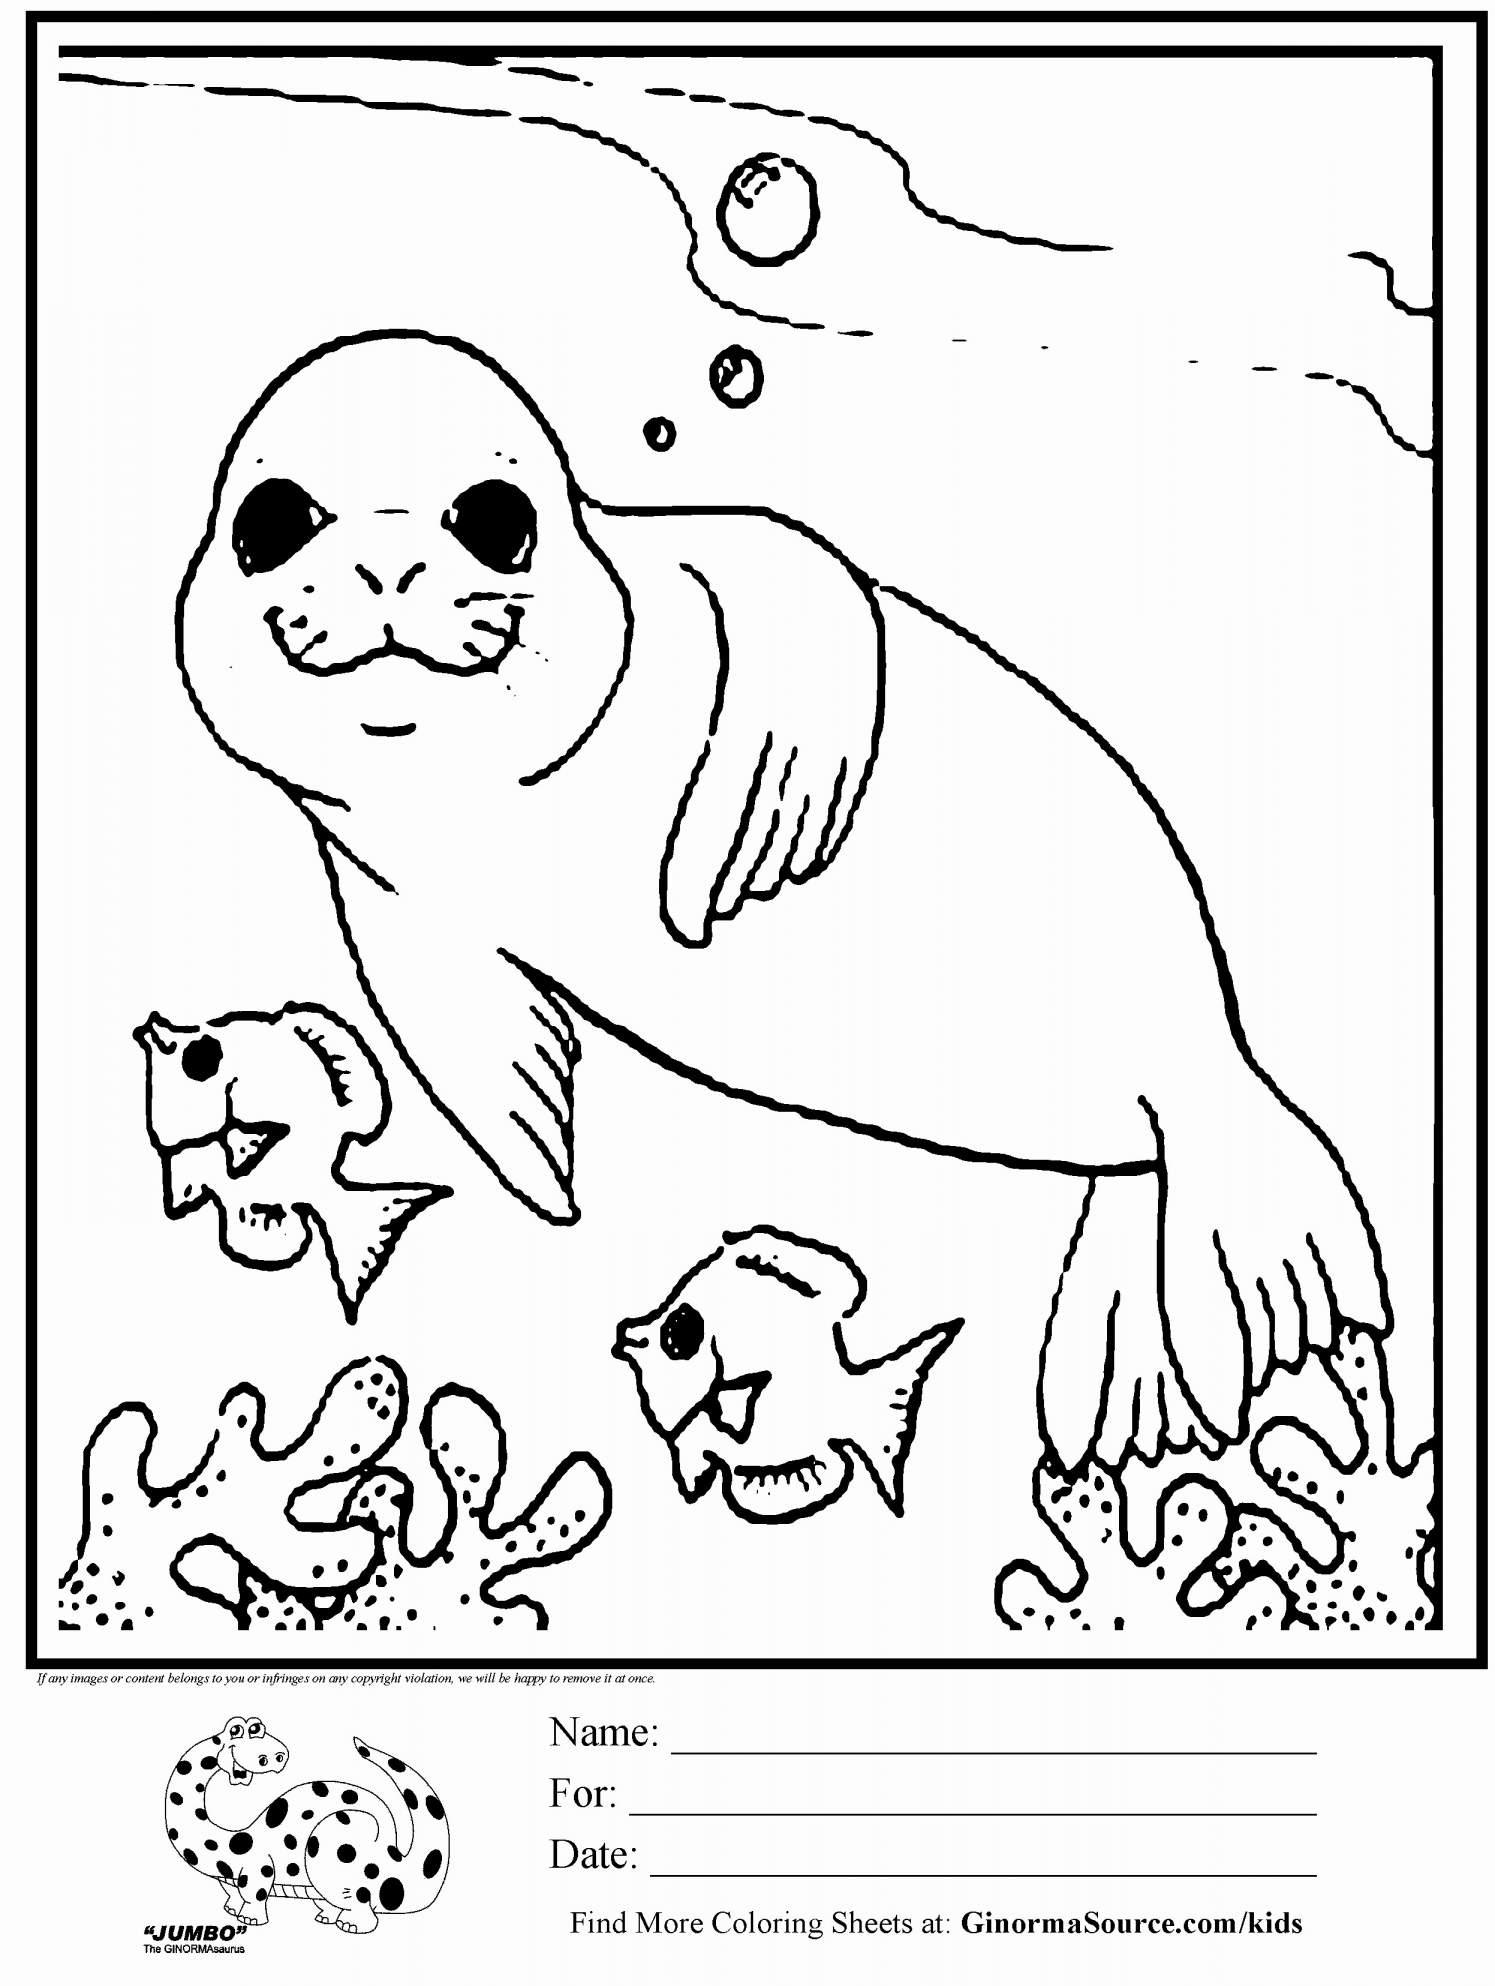 27 Coloring Pages that Say Your Name Download - Coloring Sheets